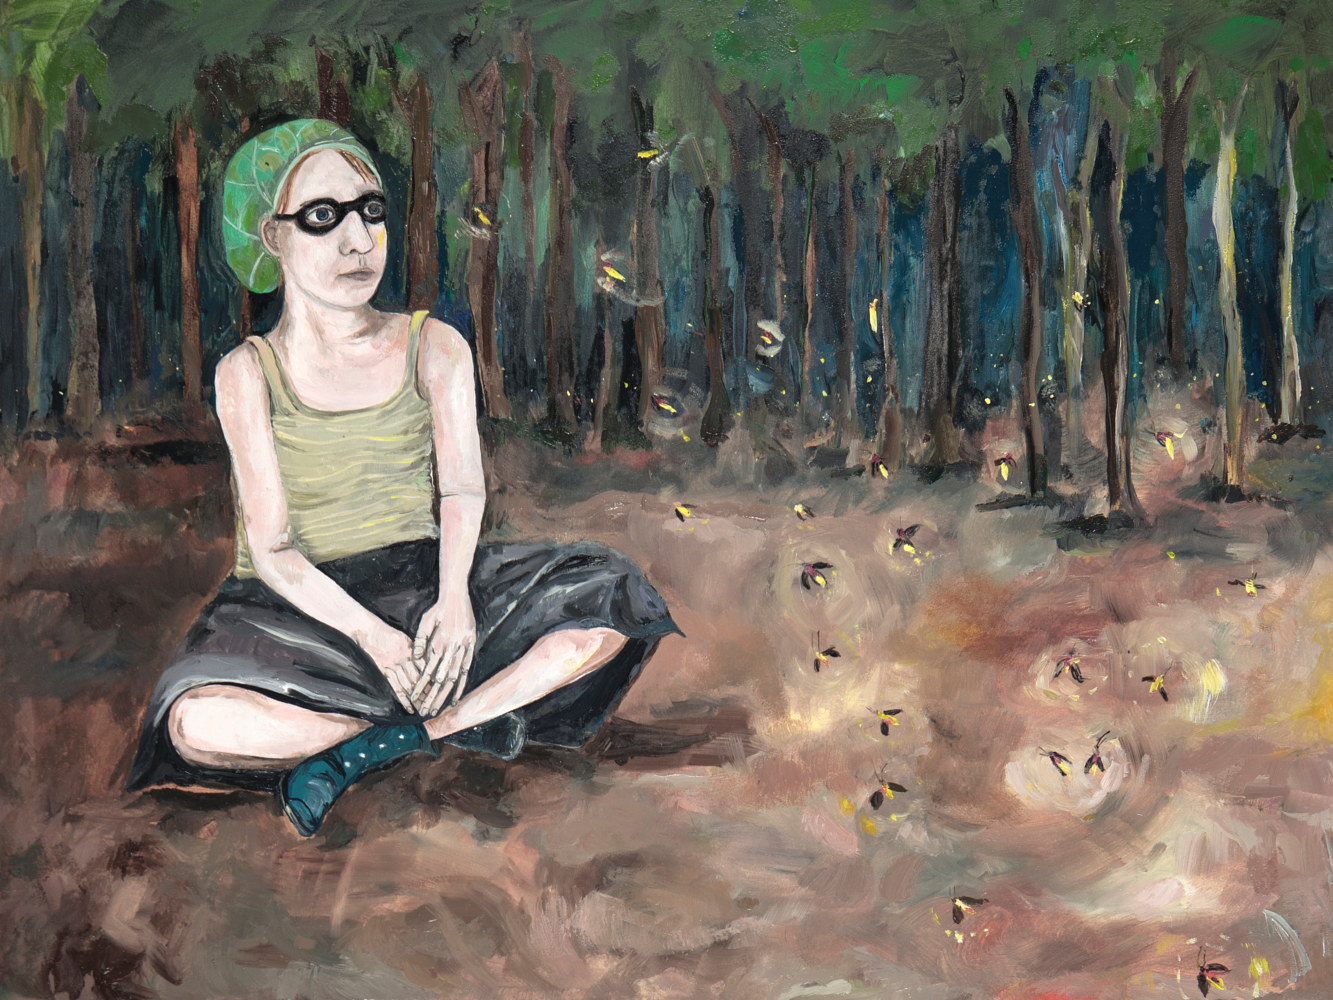 Oil painting A Girl in the Woods by Katherine Bennett